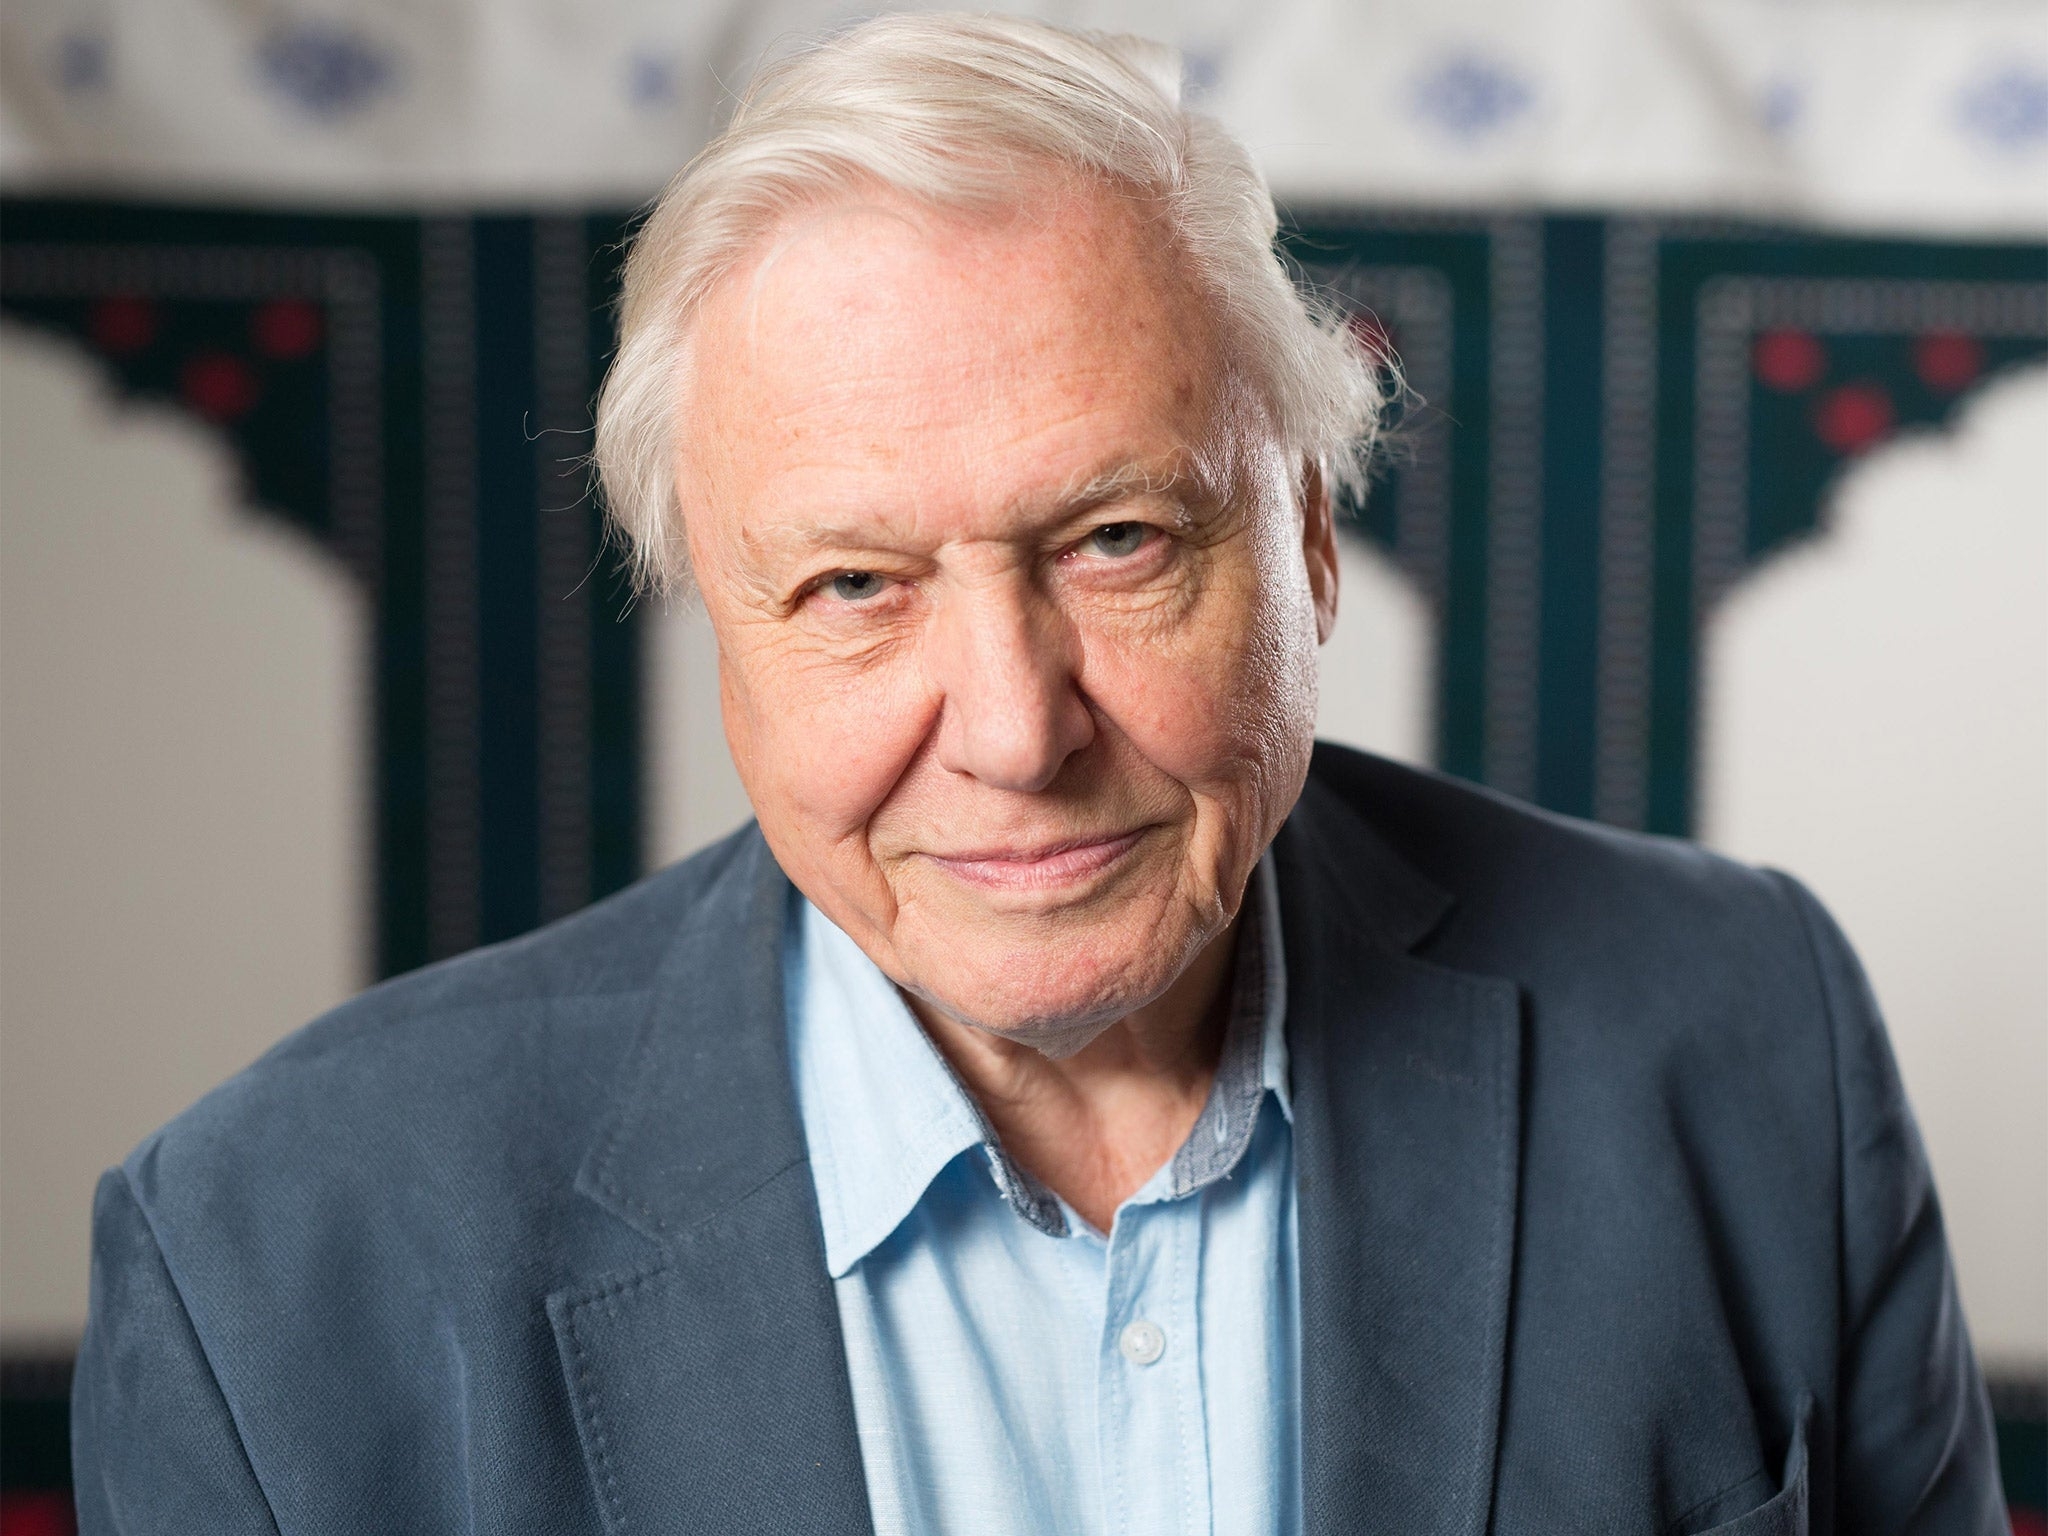 Sir David Attenborough to mark 90th birthday with new BBC specials | The Independent